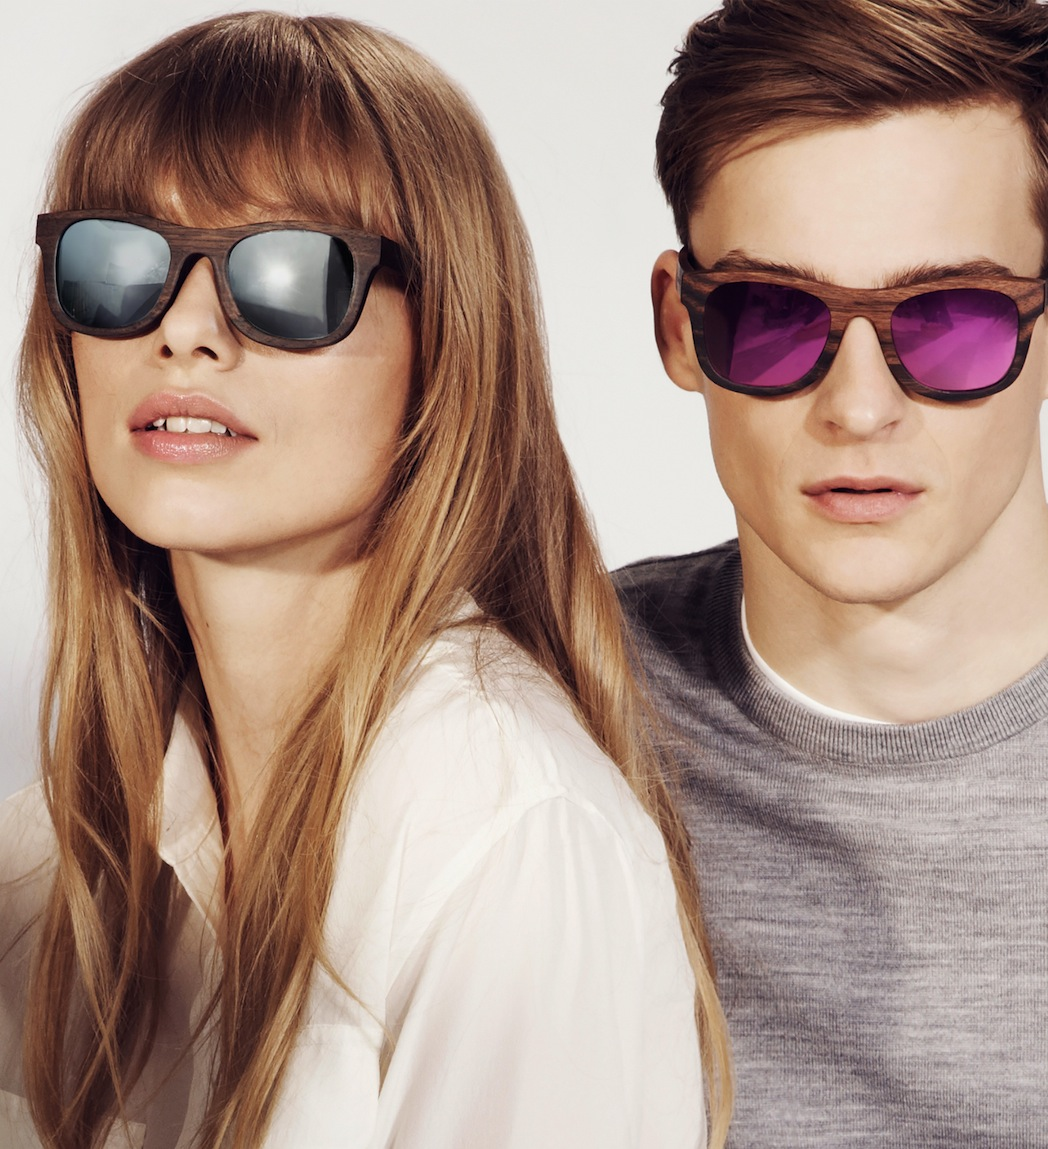 Finlay and Co sunglasses for men and women